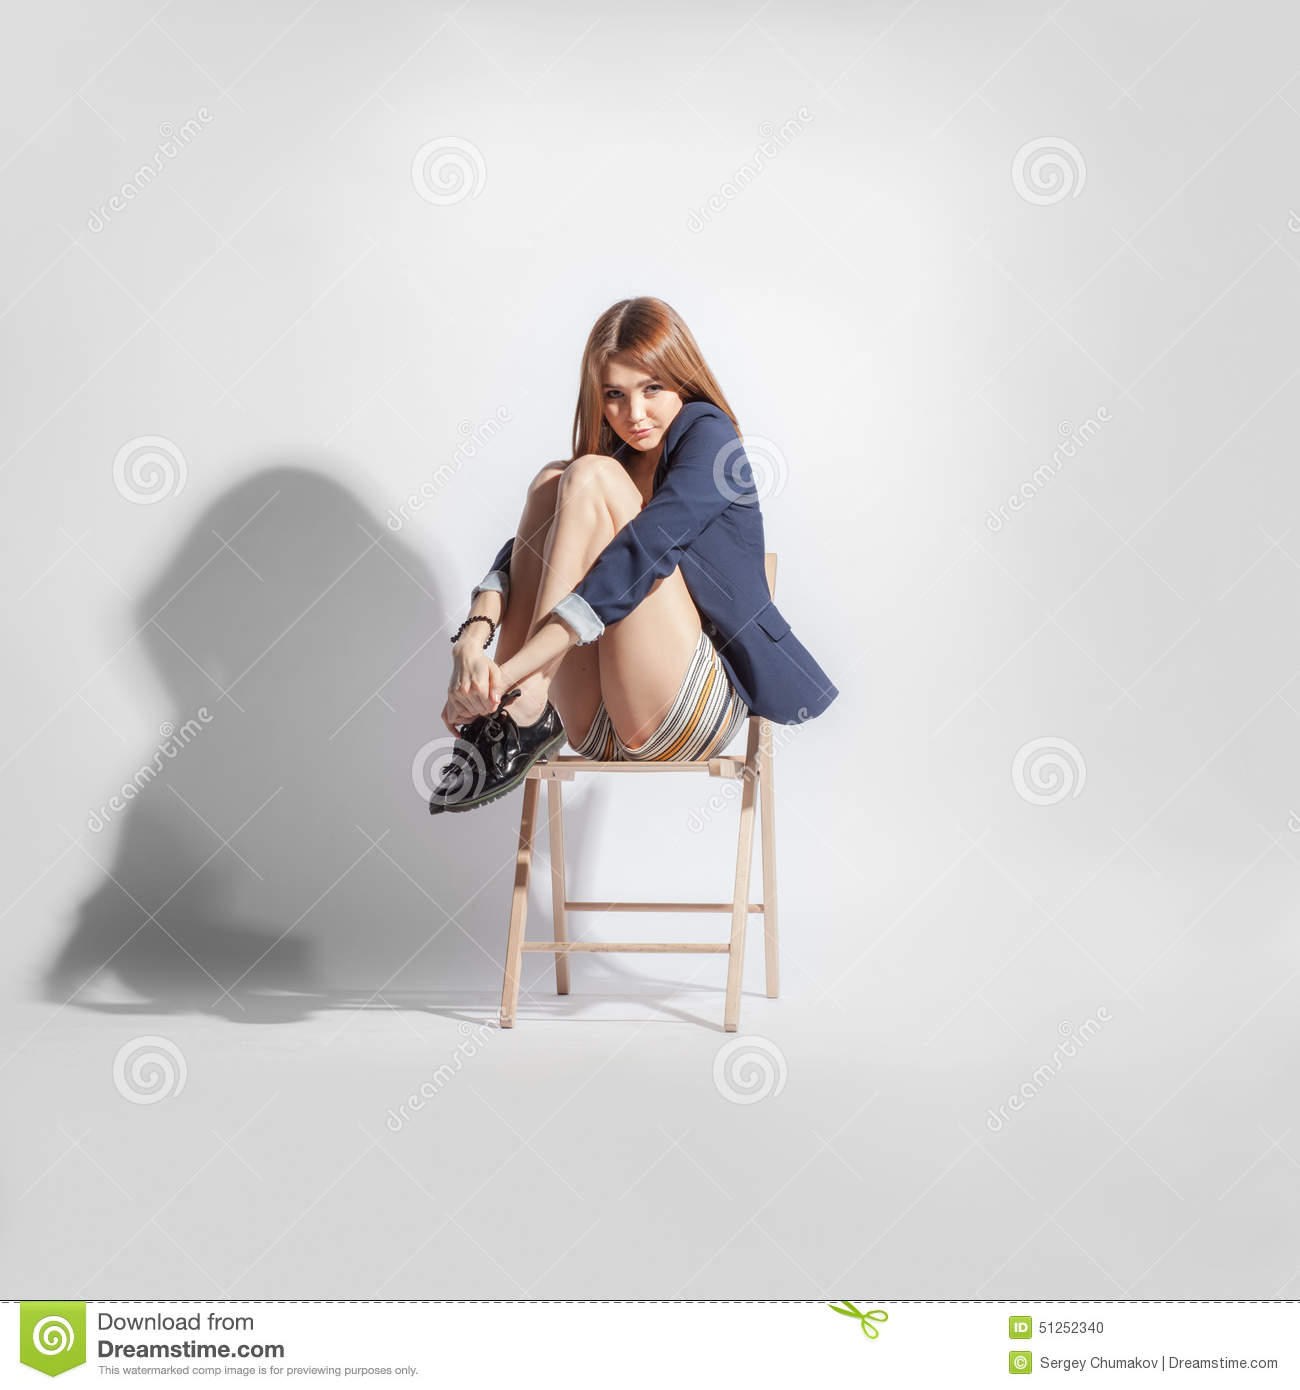 Lonely Woman On A Chair In Emryo Pose Stock Photo - Image of